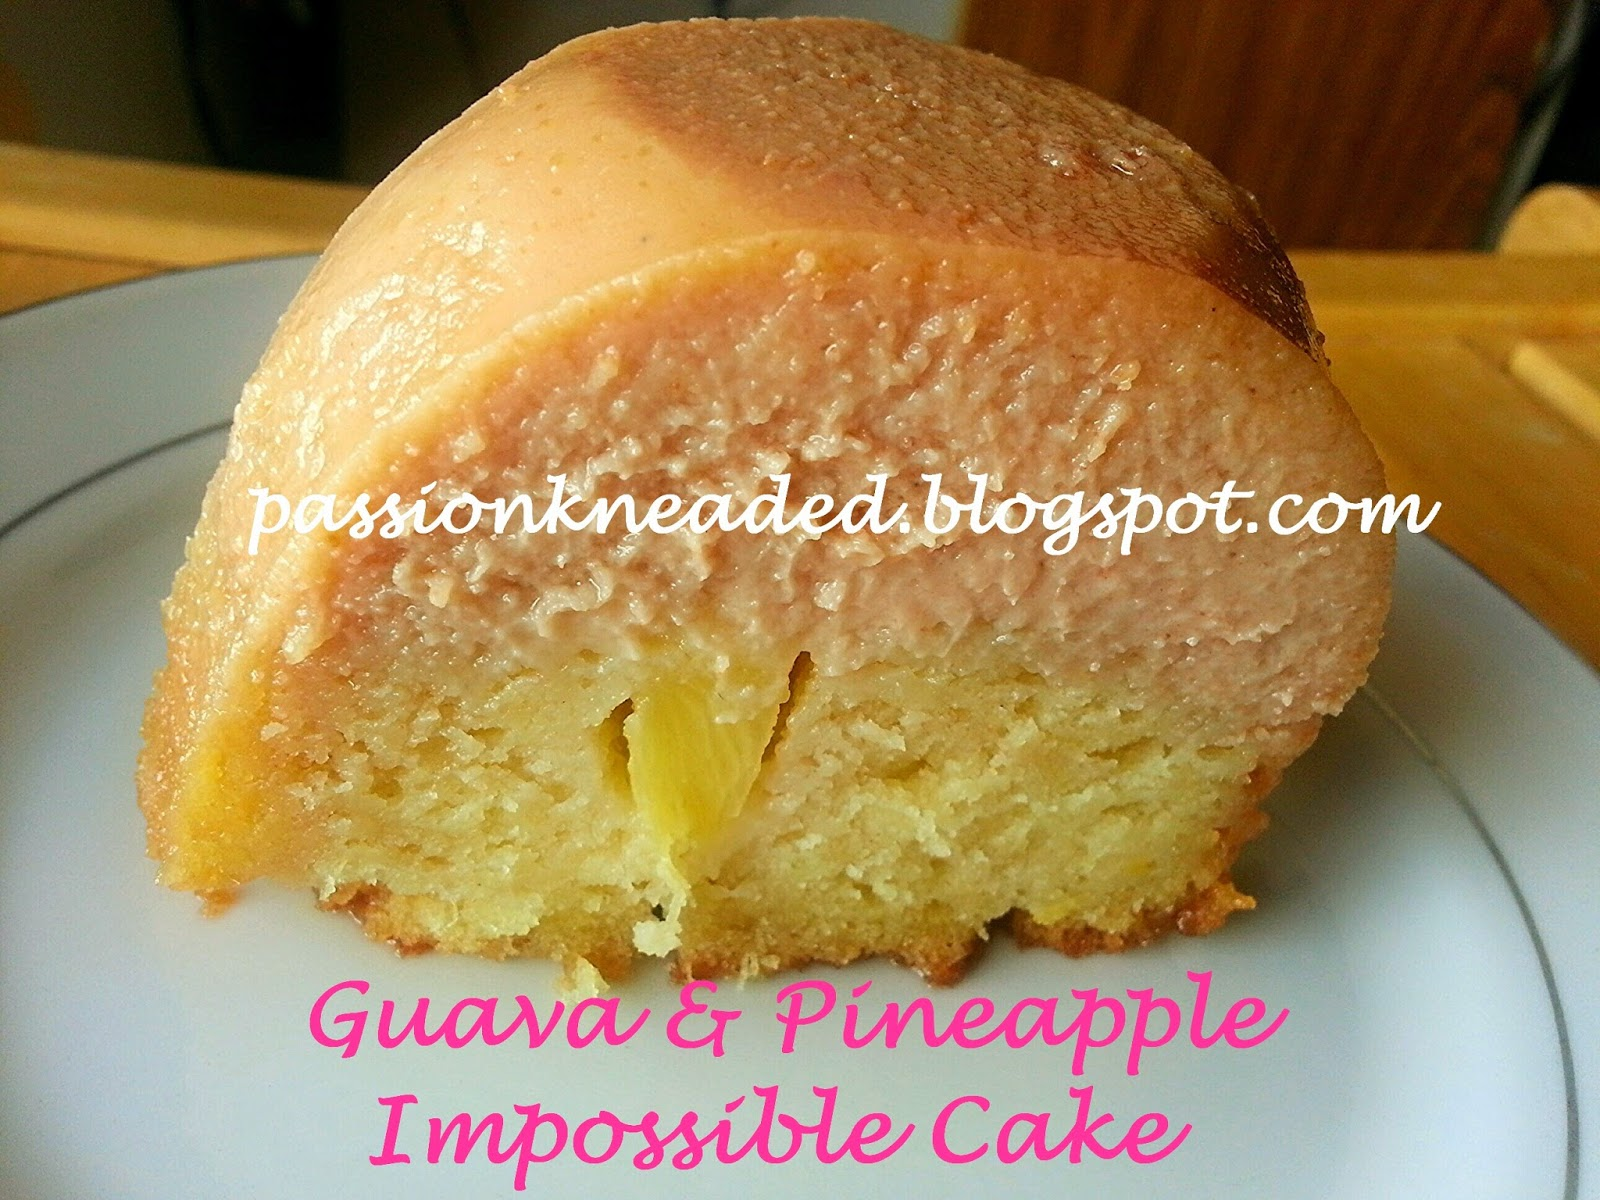 Guava and Pineapple Impossible Cake